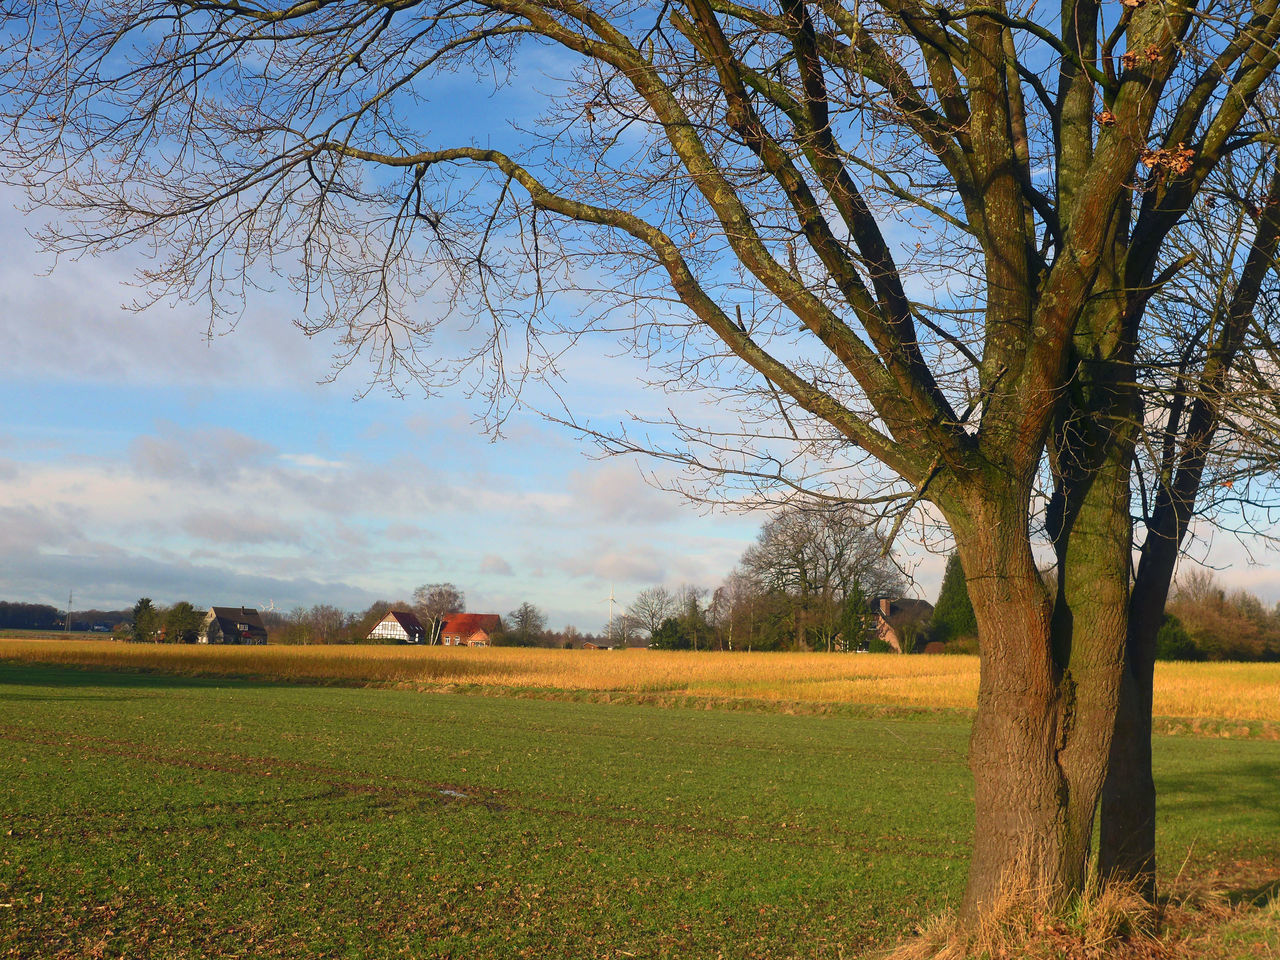 tree, field, tranquility, landscape, bare tree, nature, tranquil scene, beauty in nature, scenics, sky, agriculture, grass, no people, rural scene, day, outdoors, growth, branch